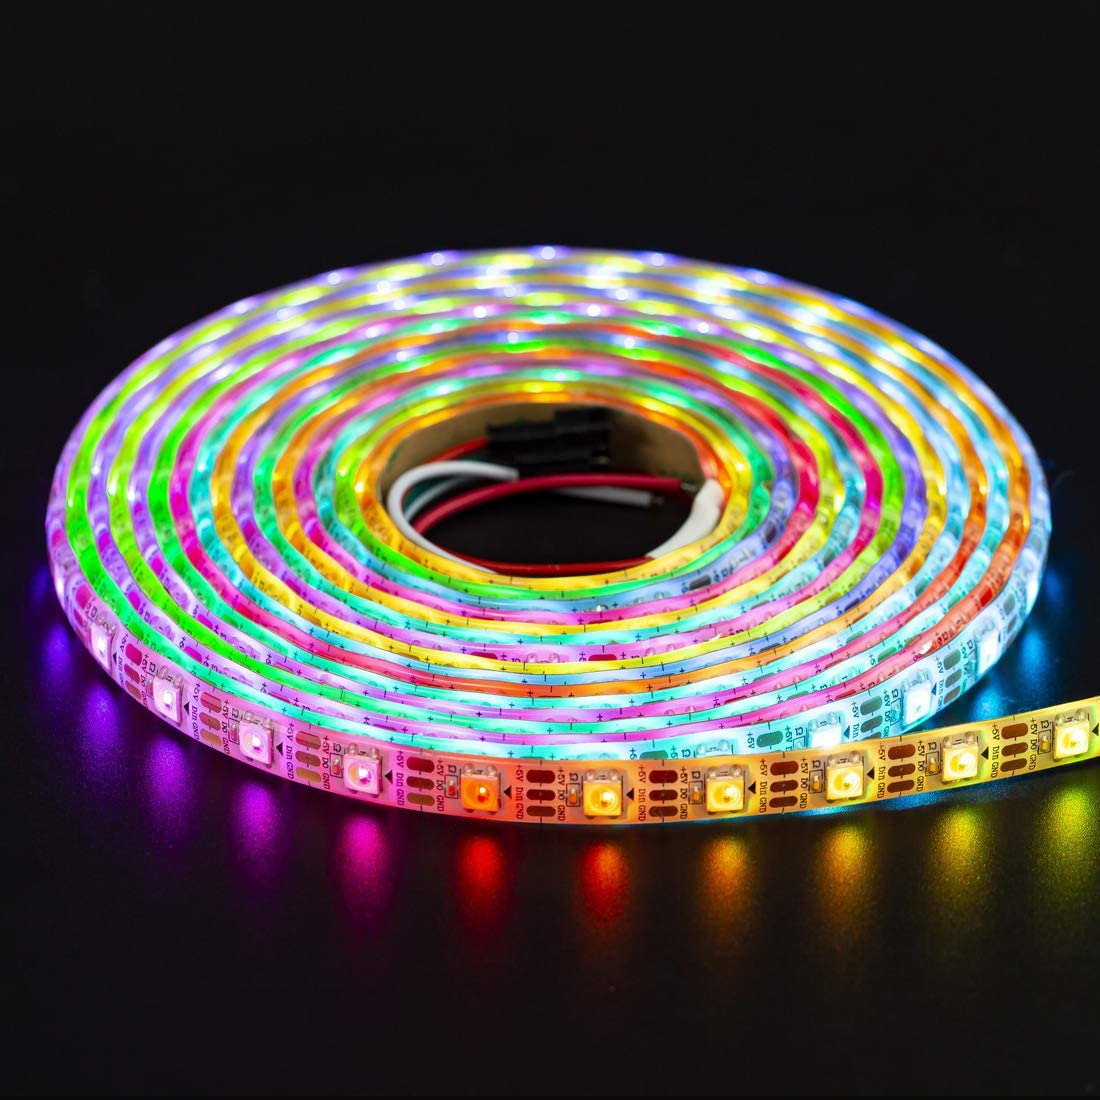 16.4ft 5m 60leds//Pixels//m Individually Addressable Flexible 4 Color in 1 LED Dream Color LED Strip Waterproof IP65 DC5V BTF-LIGHTING RGBW RGBCW White SK6812 Similar WS2812B